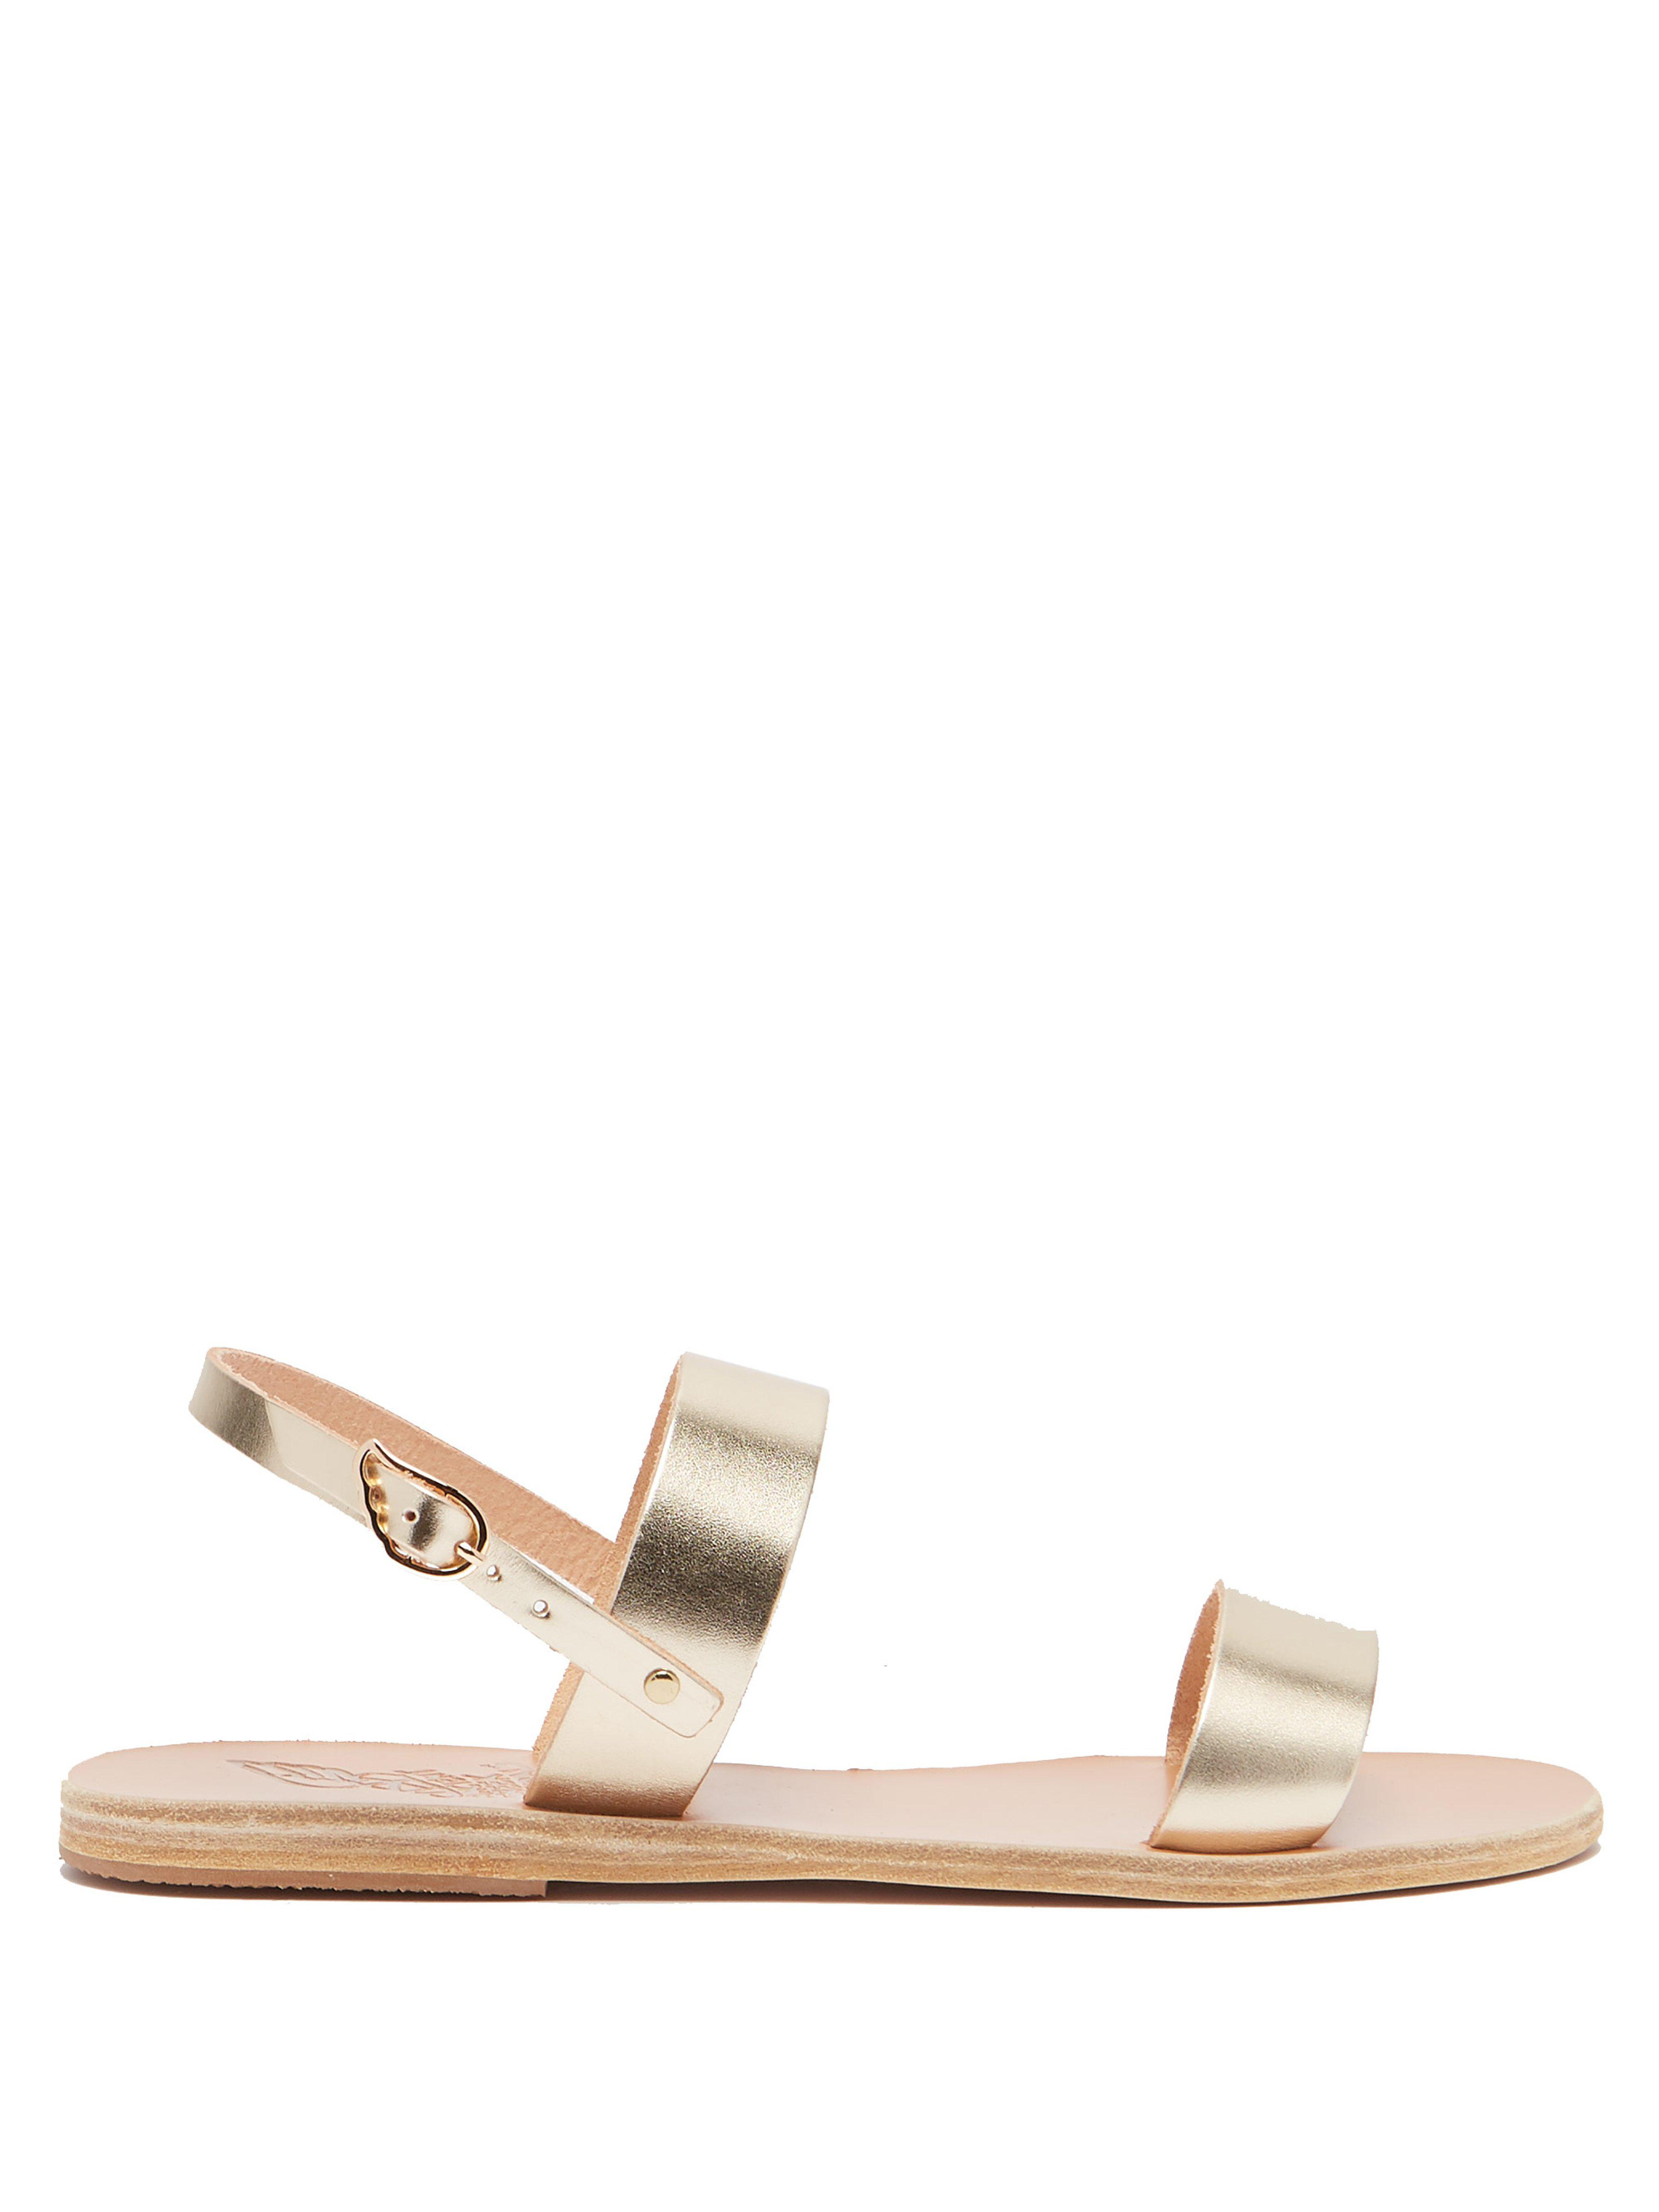 163f6eb41f5aa Ancient Greek Sandals Clio Leather Sandals - Save 25.80645161290323 ...